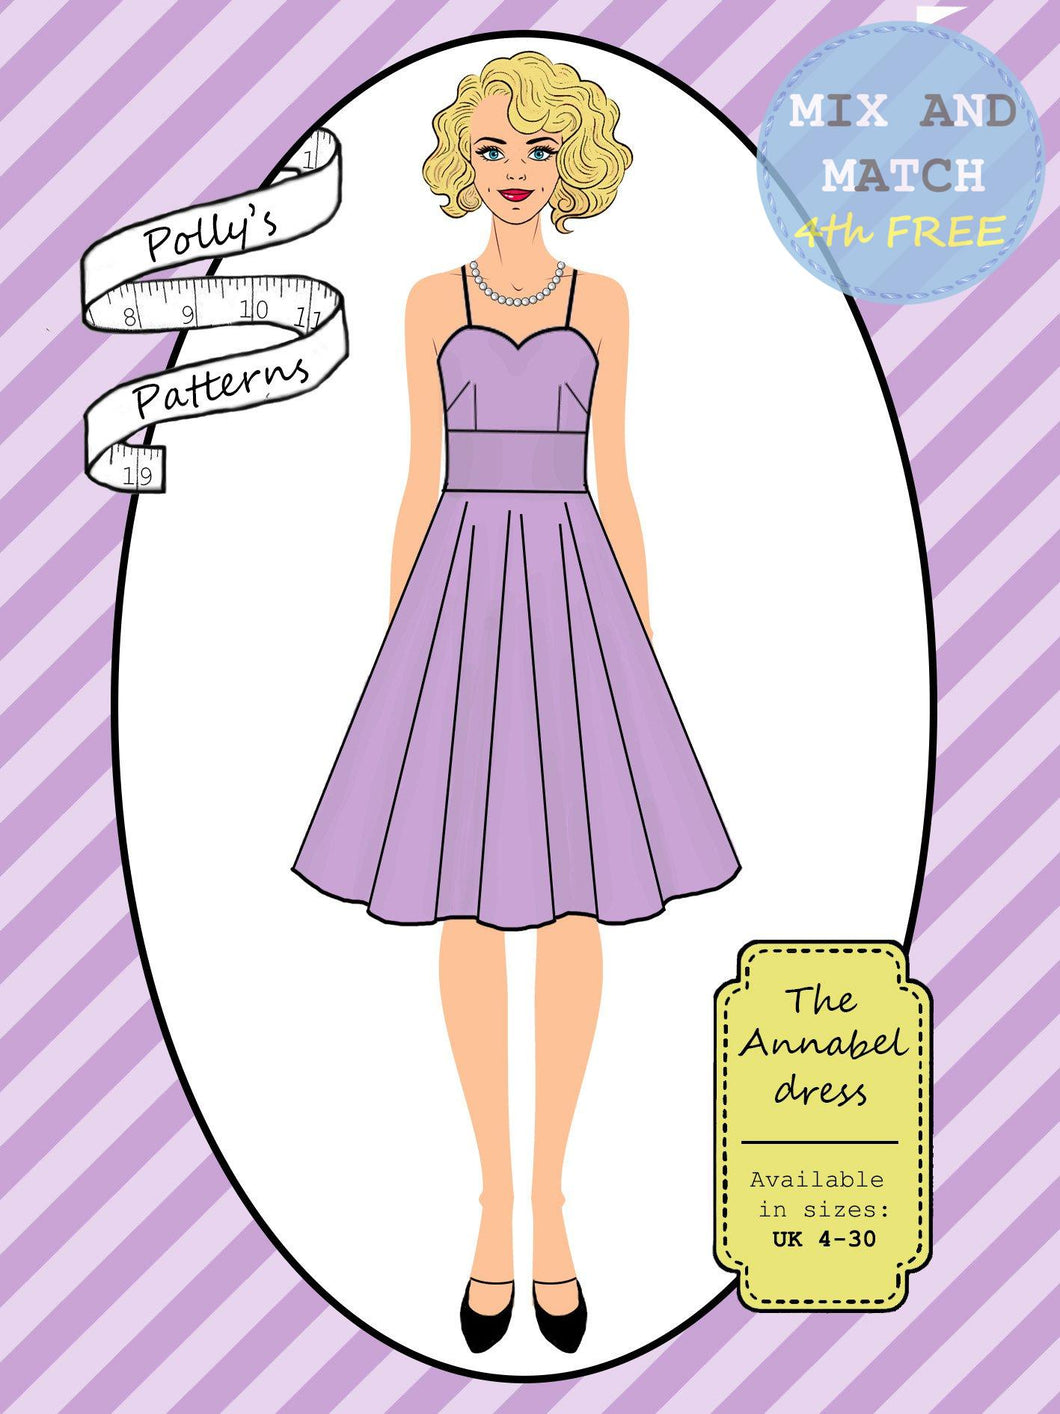 Polly's patterns - The Annabel Dress - Pattern Shop